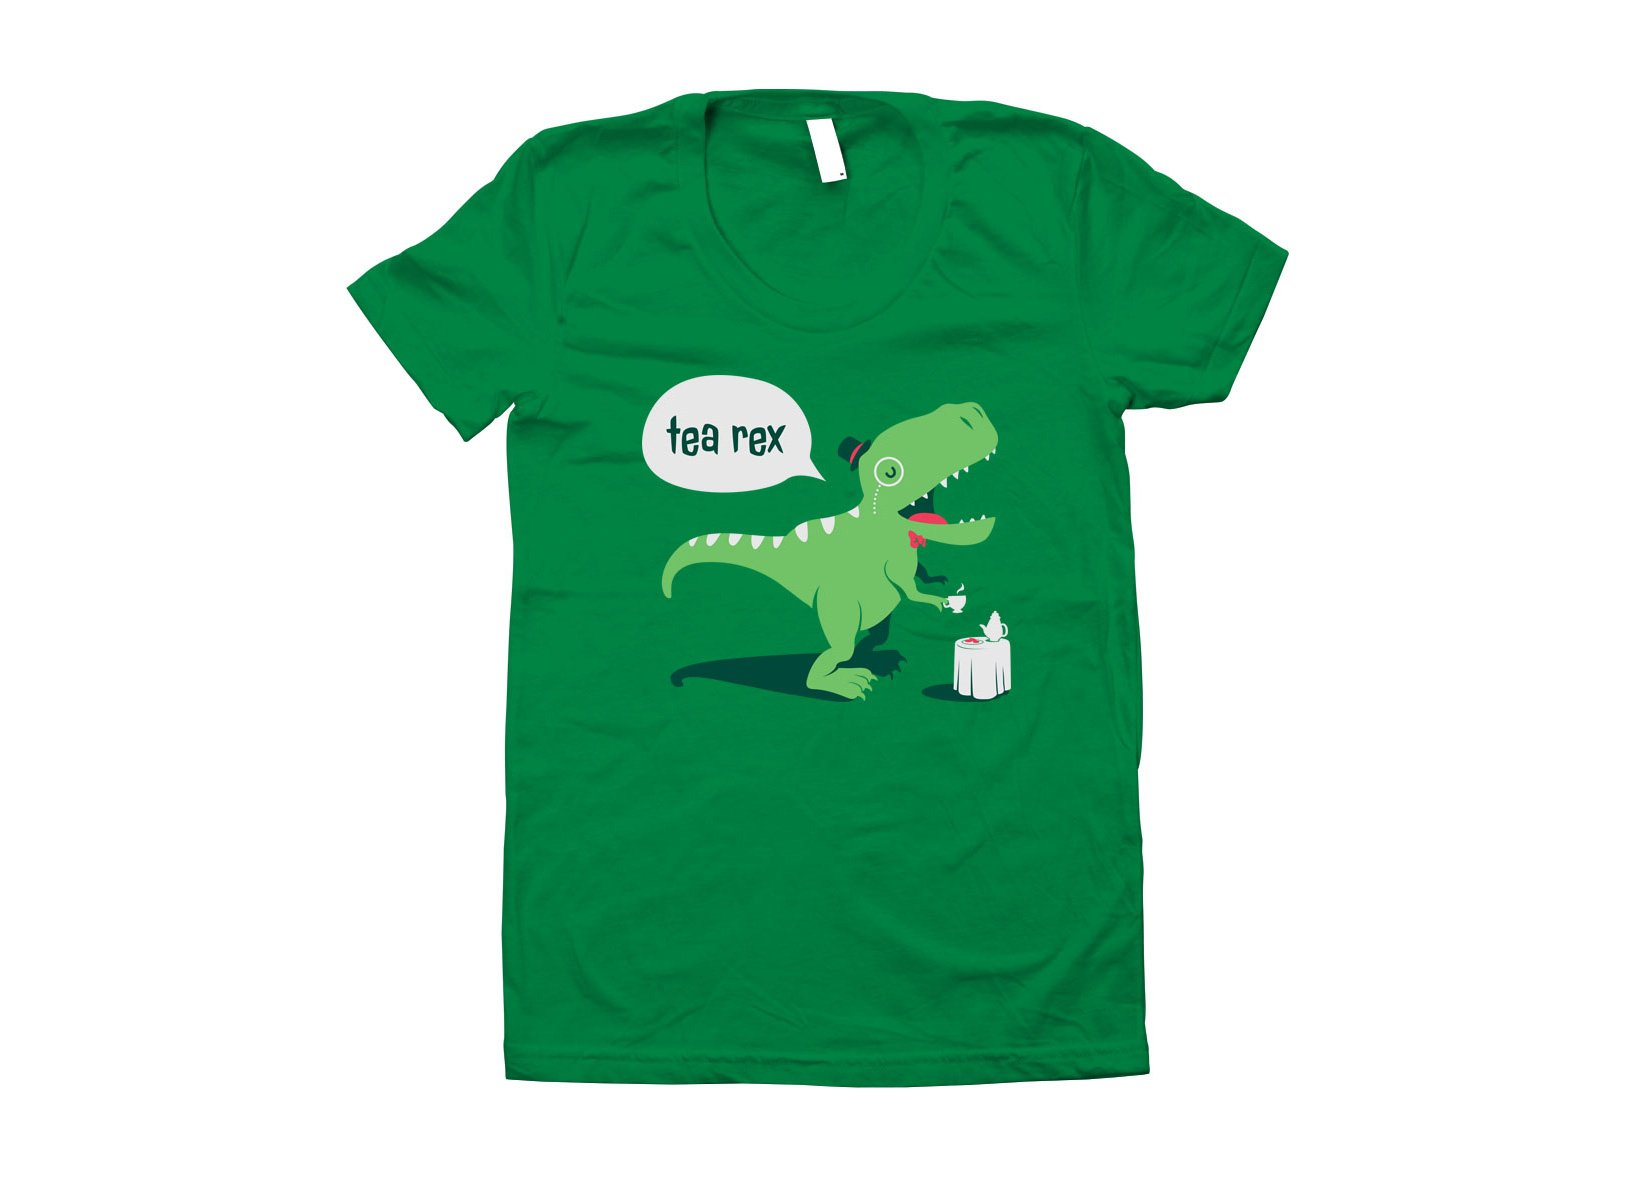 Tea Rex on Juniors T-Shirt